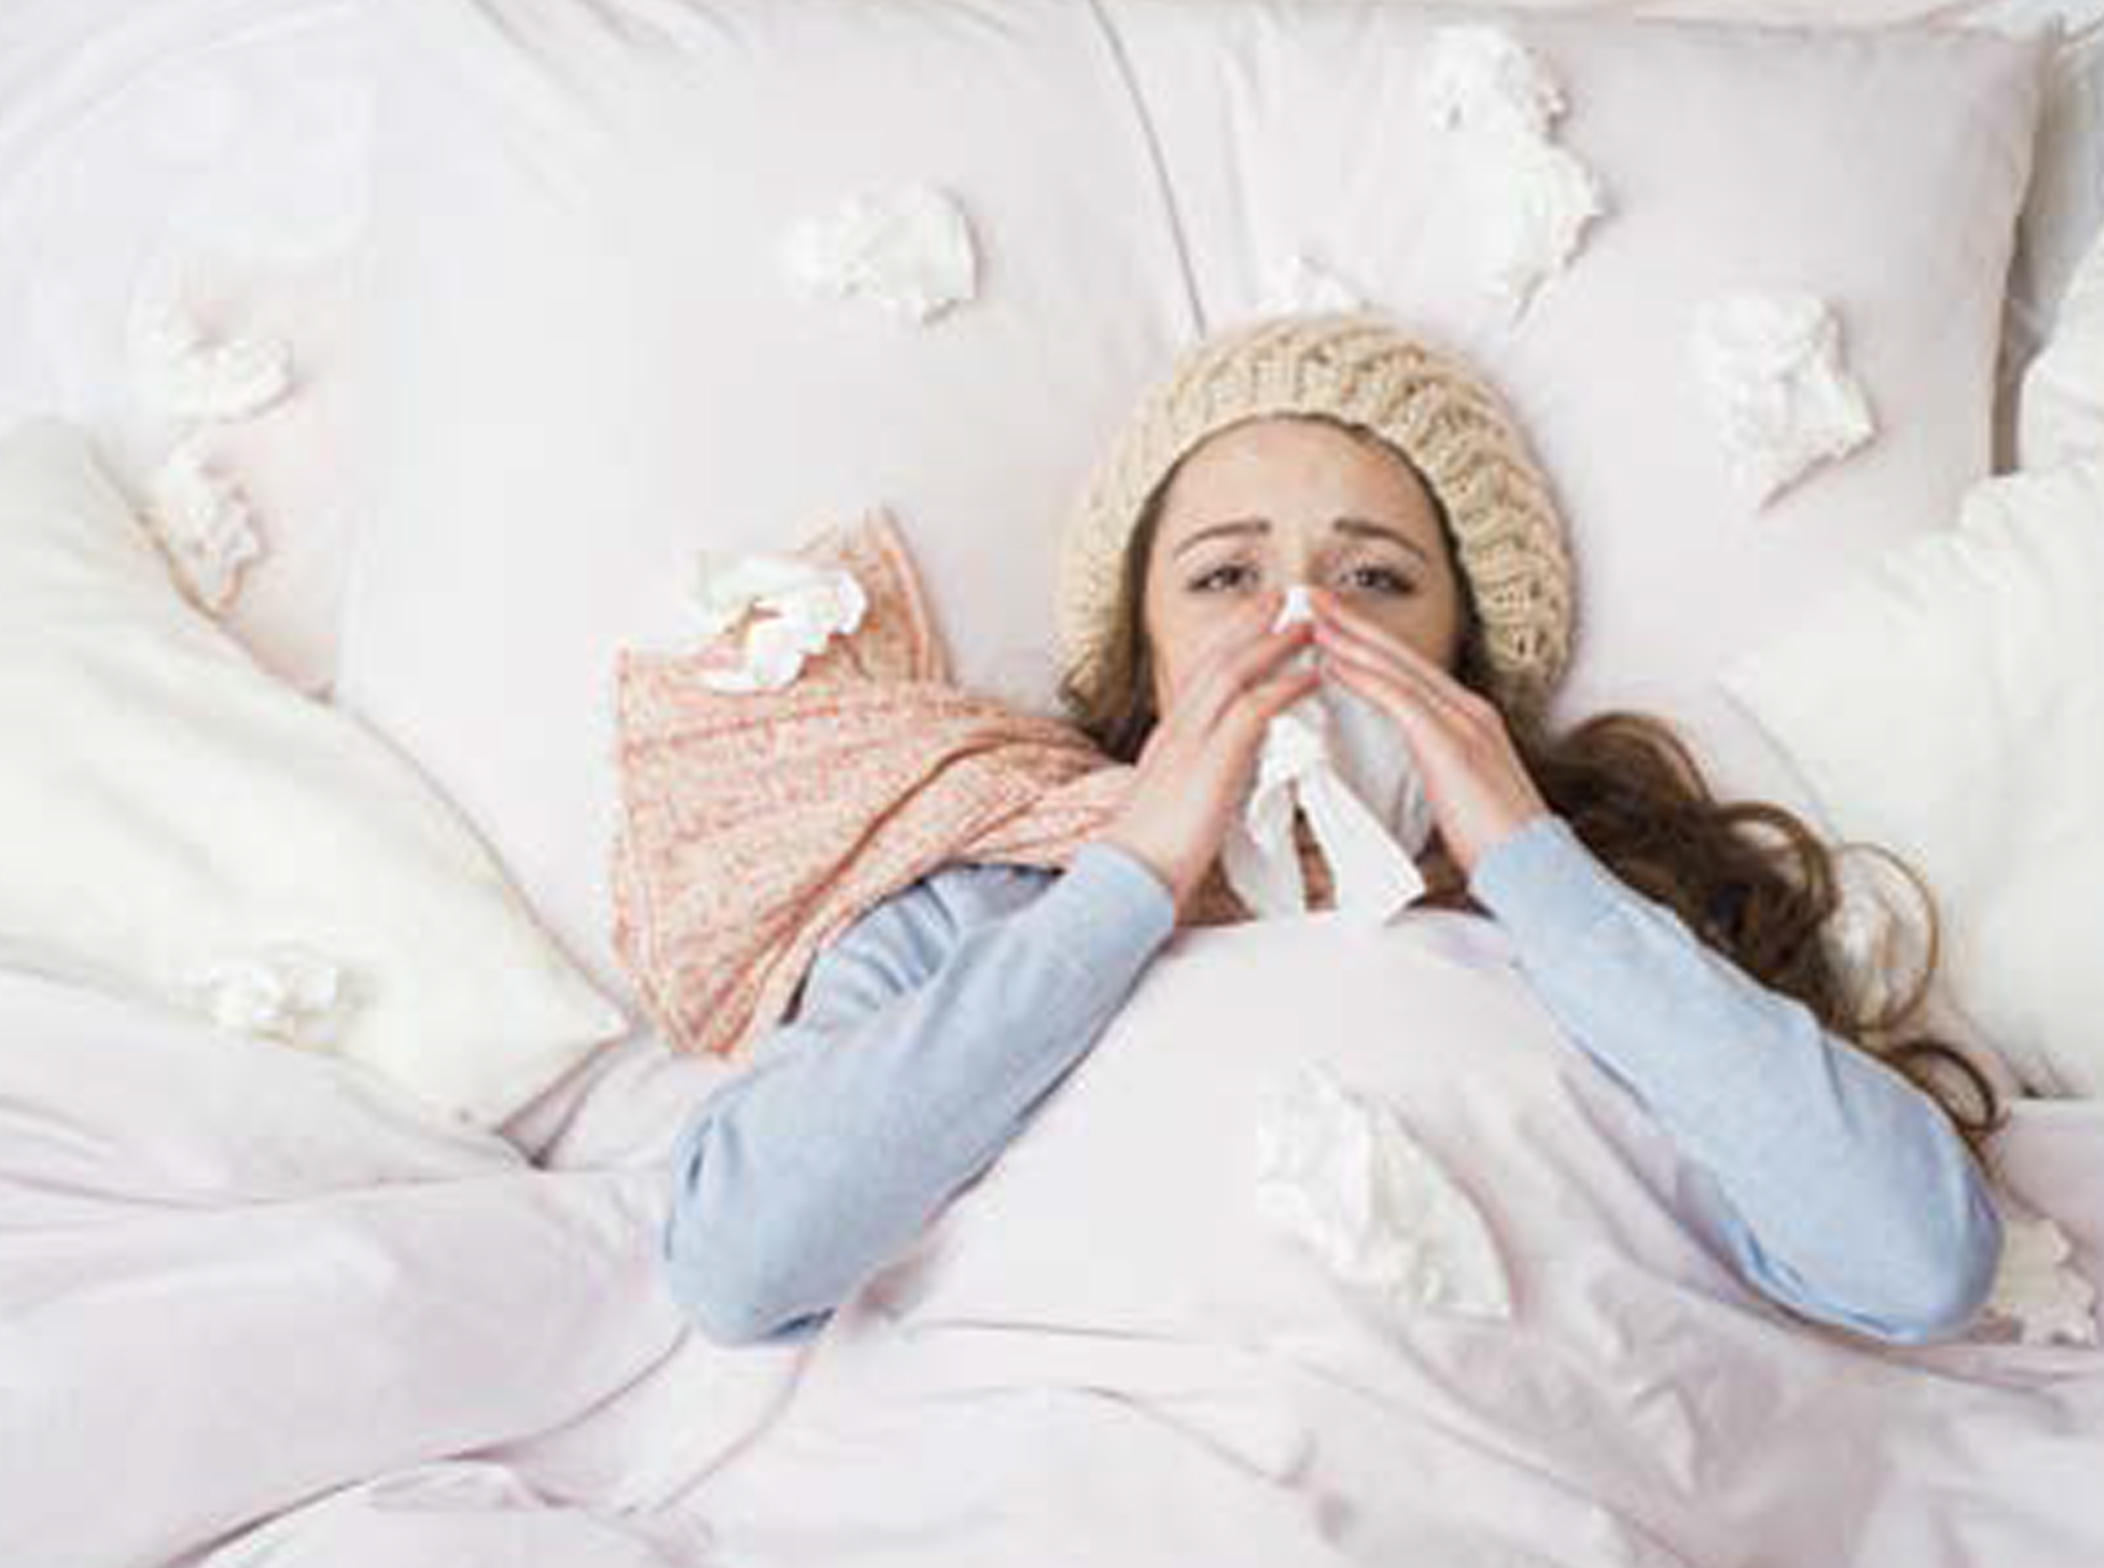 Flu on the rise in Kiowa County